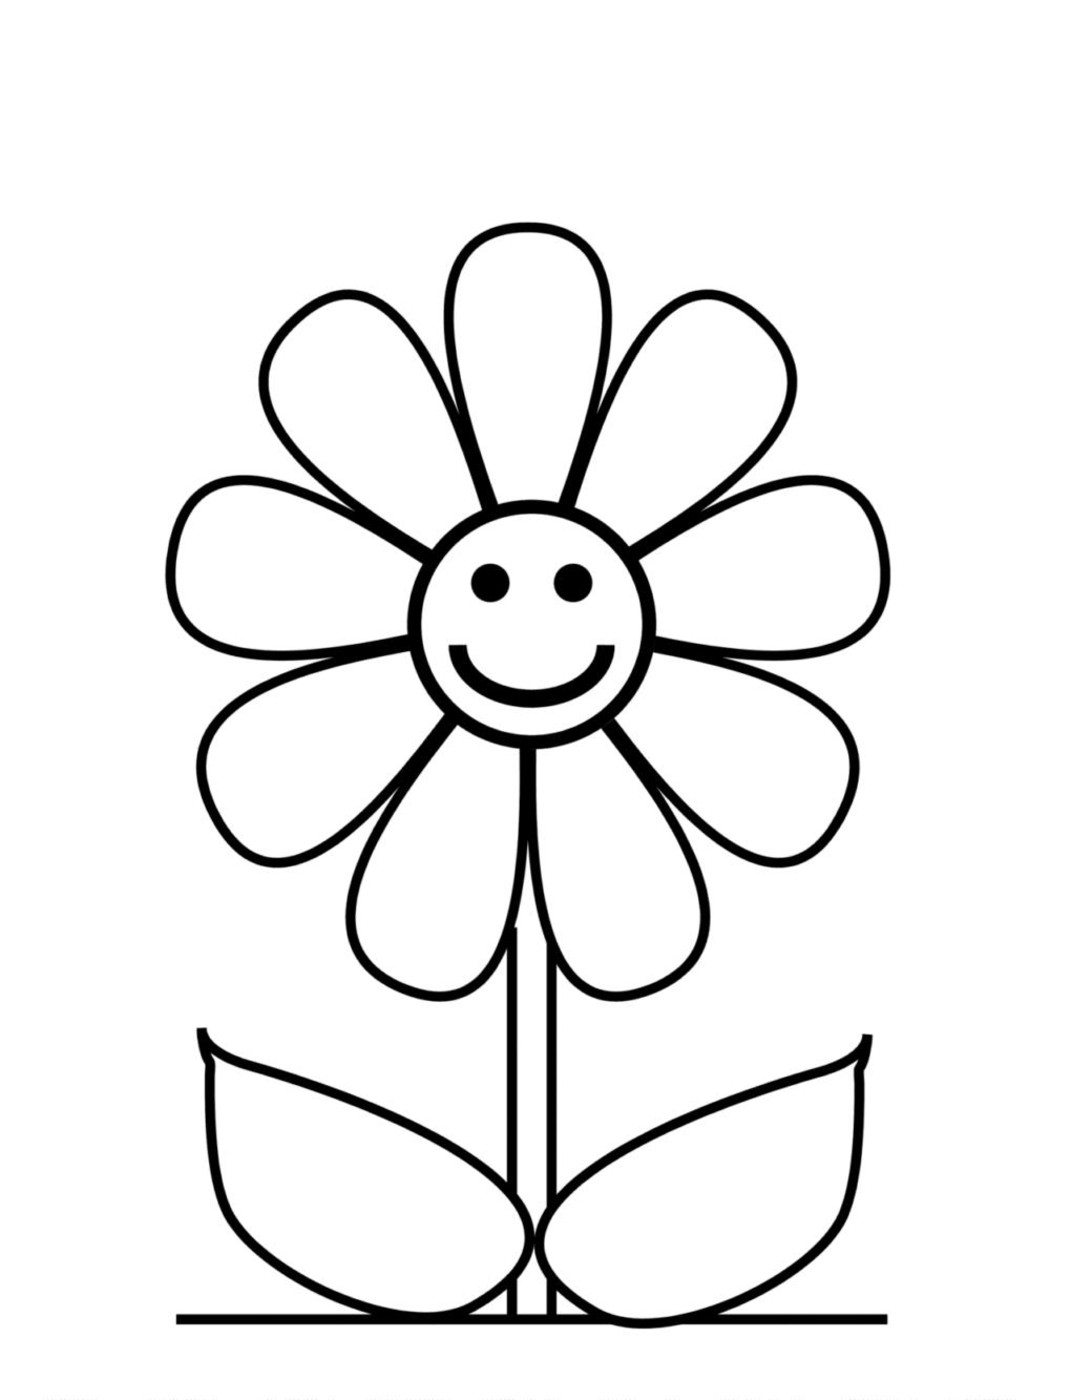 flower printables free easy to print flower coloring pages tulamama flower printables